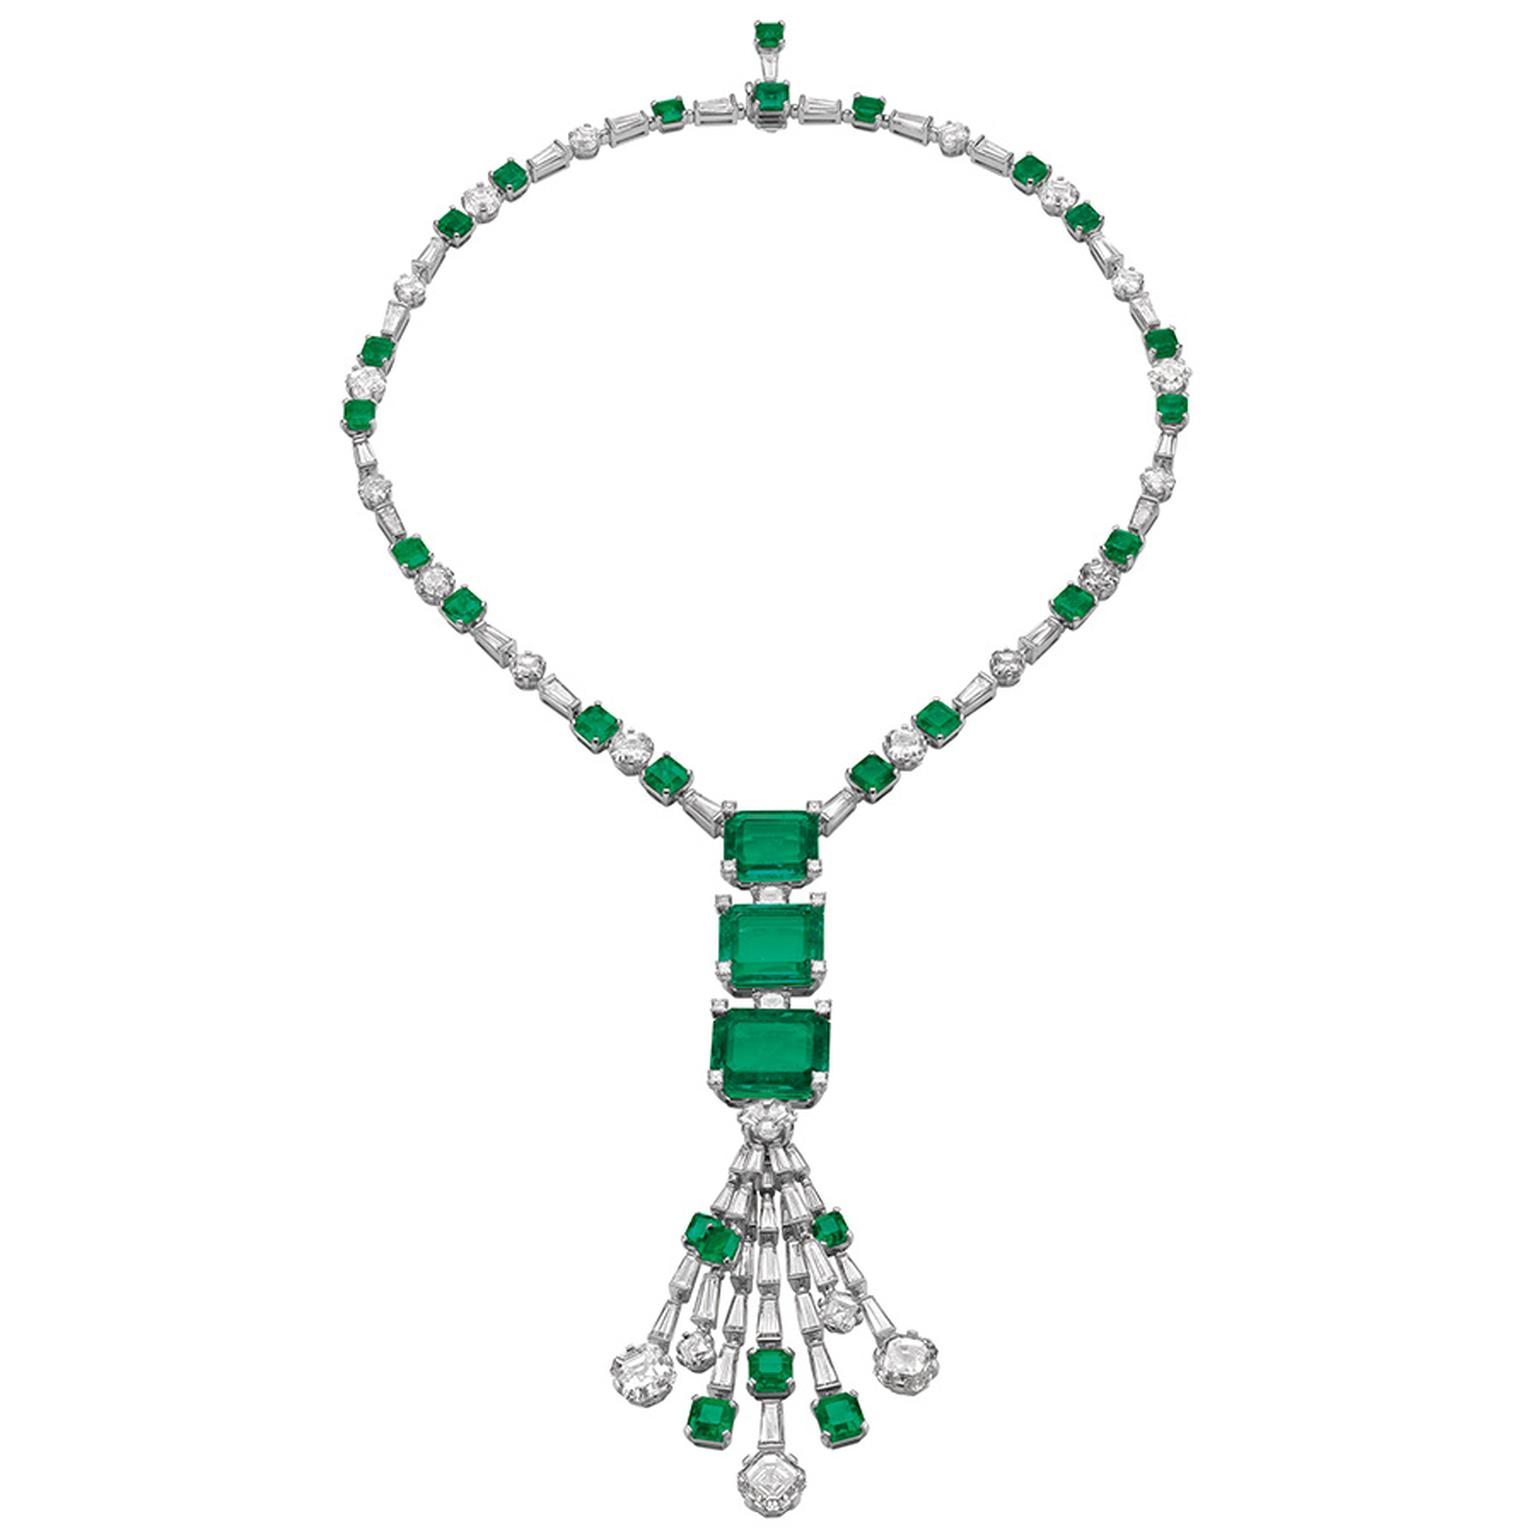 Bulgari-Elizabeth-Taylor-Emerald-and-Diamonds-necklace.jpg